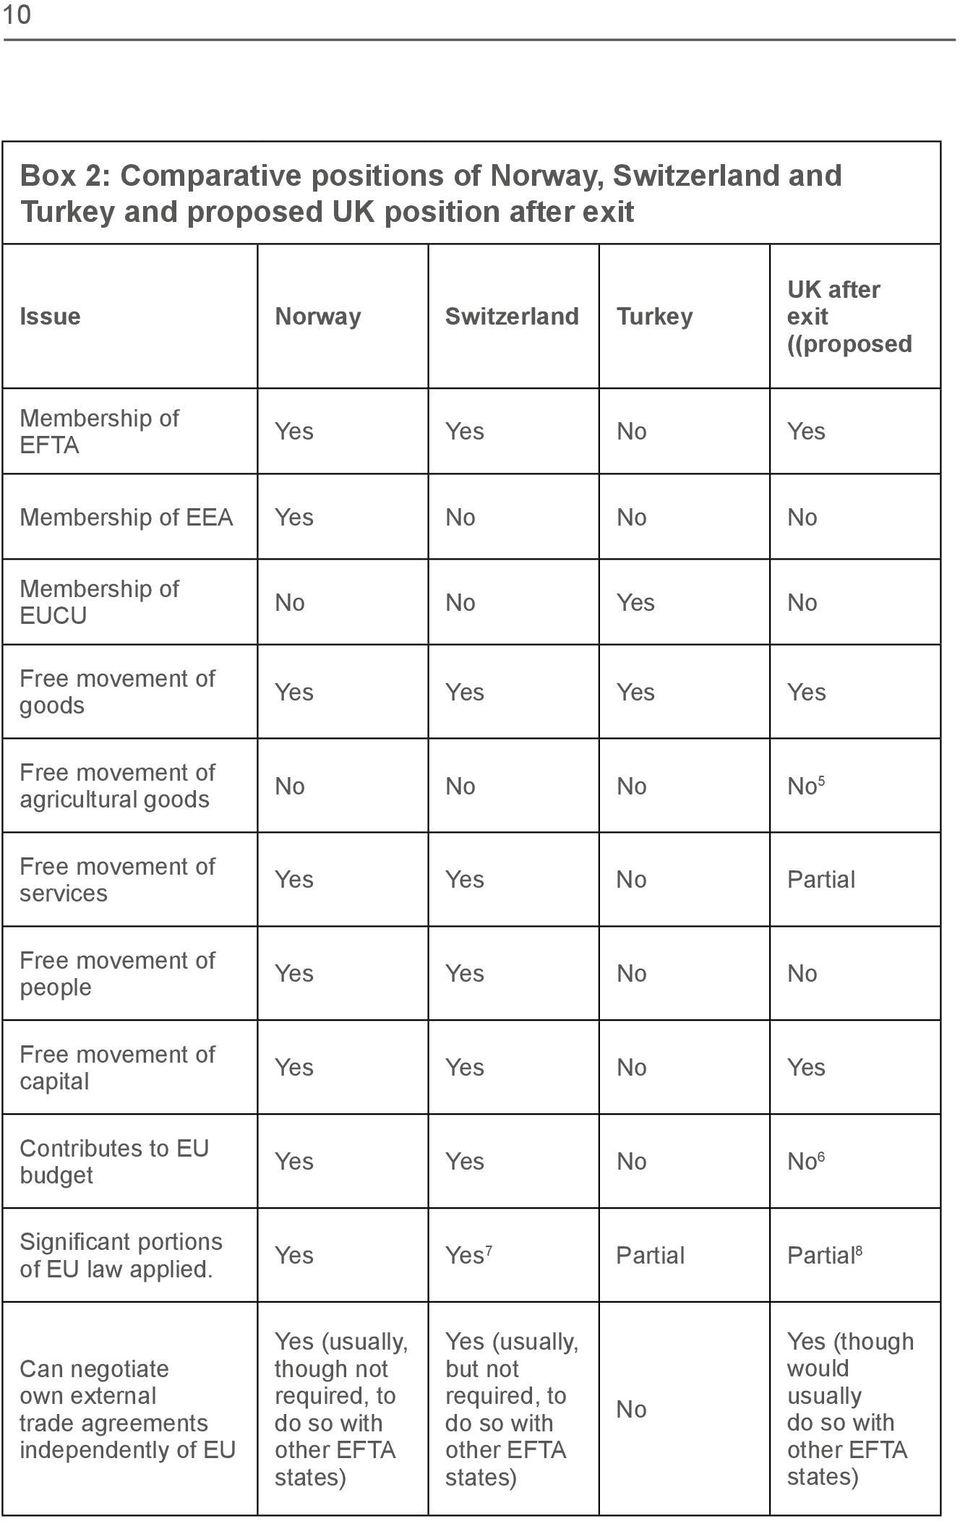 Free movement of people Yes Yes No No Free movement of capital Yes Yes No Yes Contributes to EU budget Yes Yes No No 6 Significant portions of EU law applied.